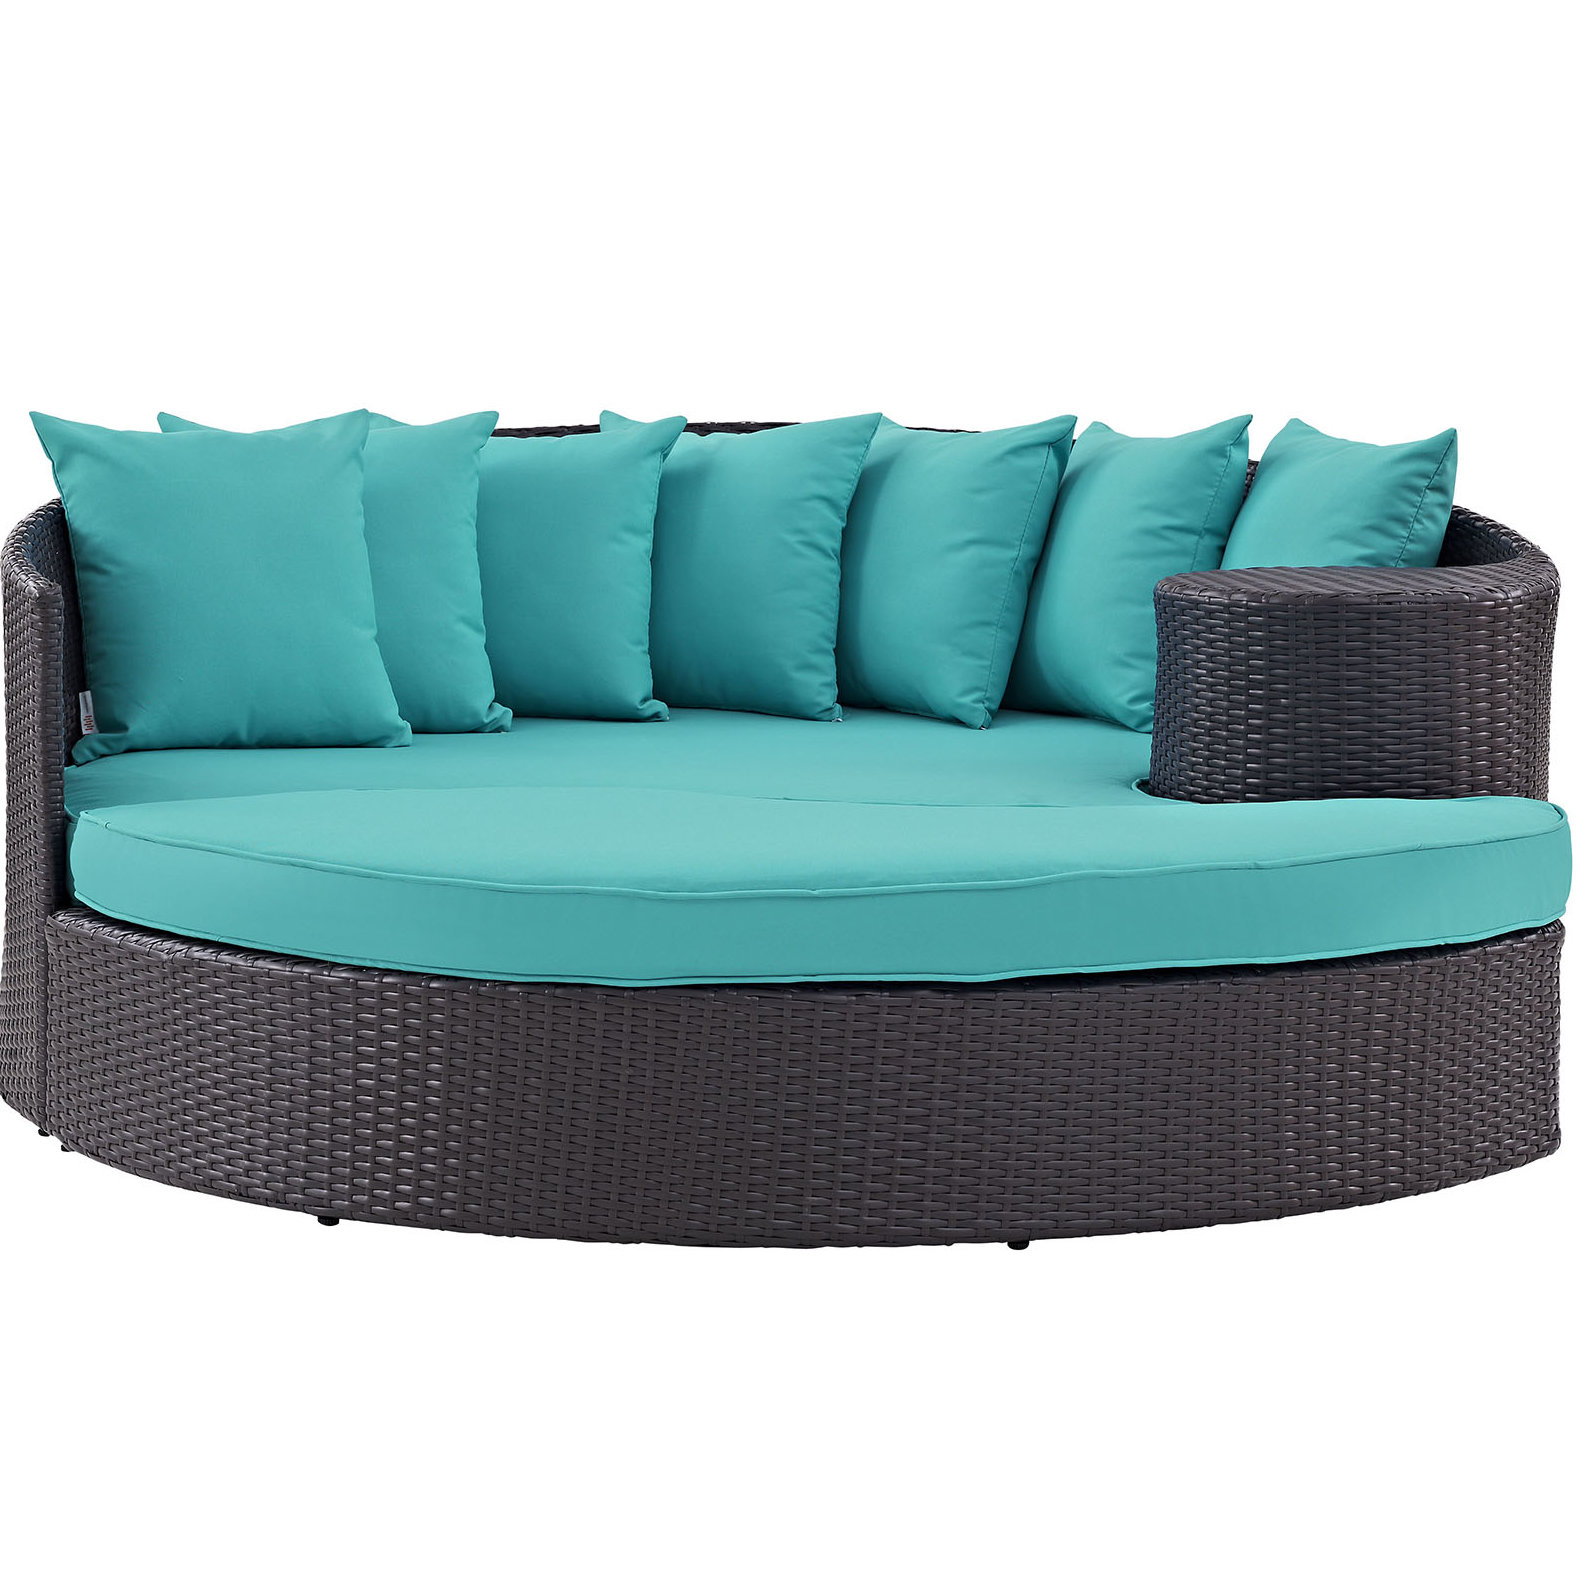 Harlow Patio Daybeds With Cushions Pertaining To Trendy Brentwood Patio Daybed With Cushions (View 12 of 20)